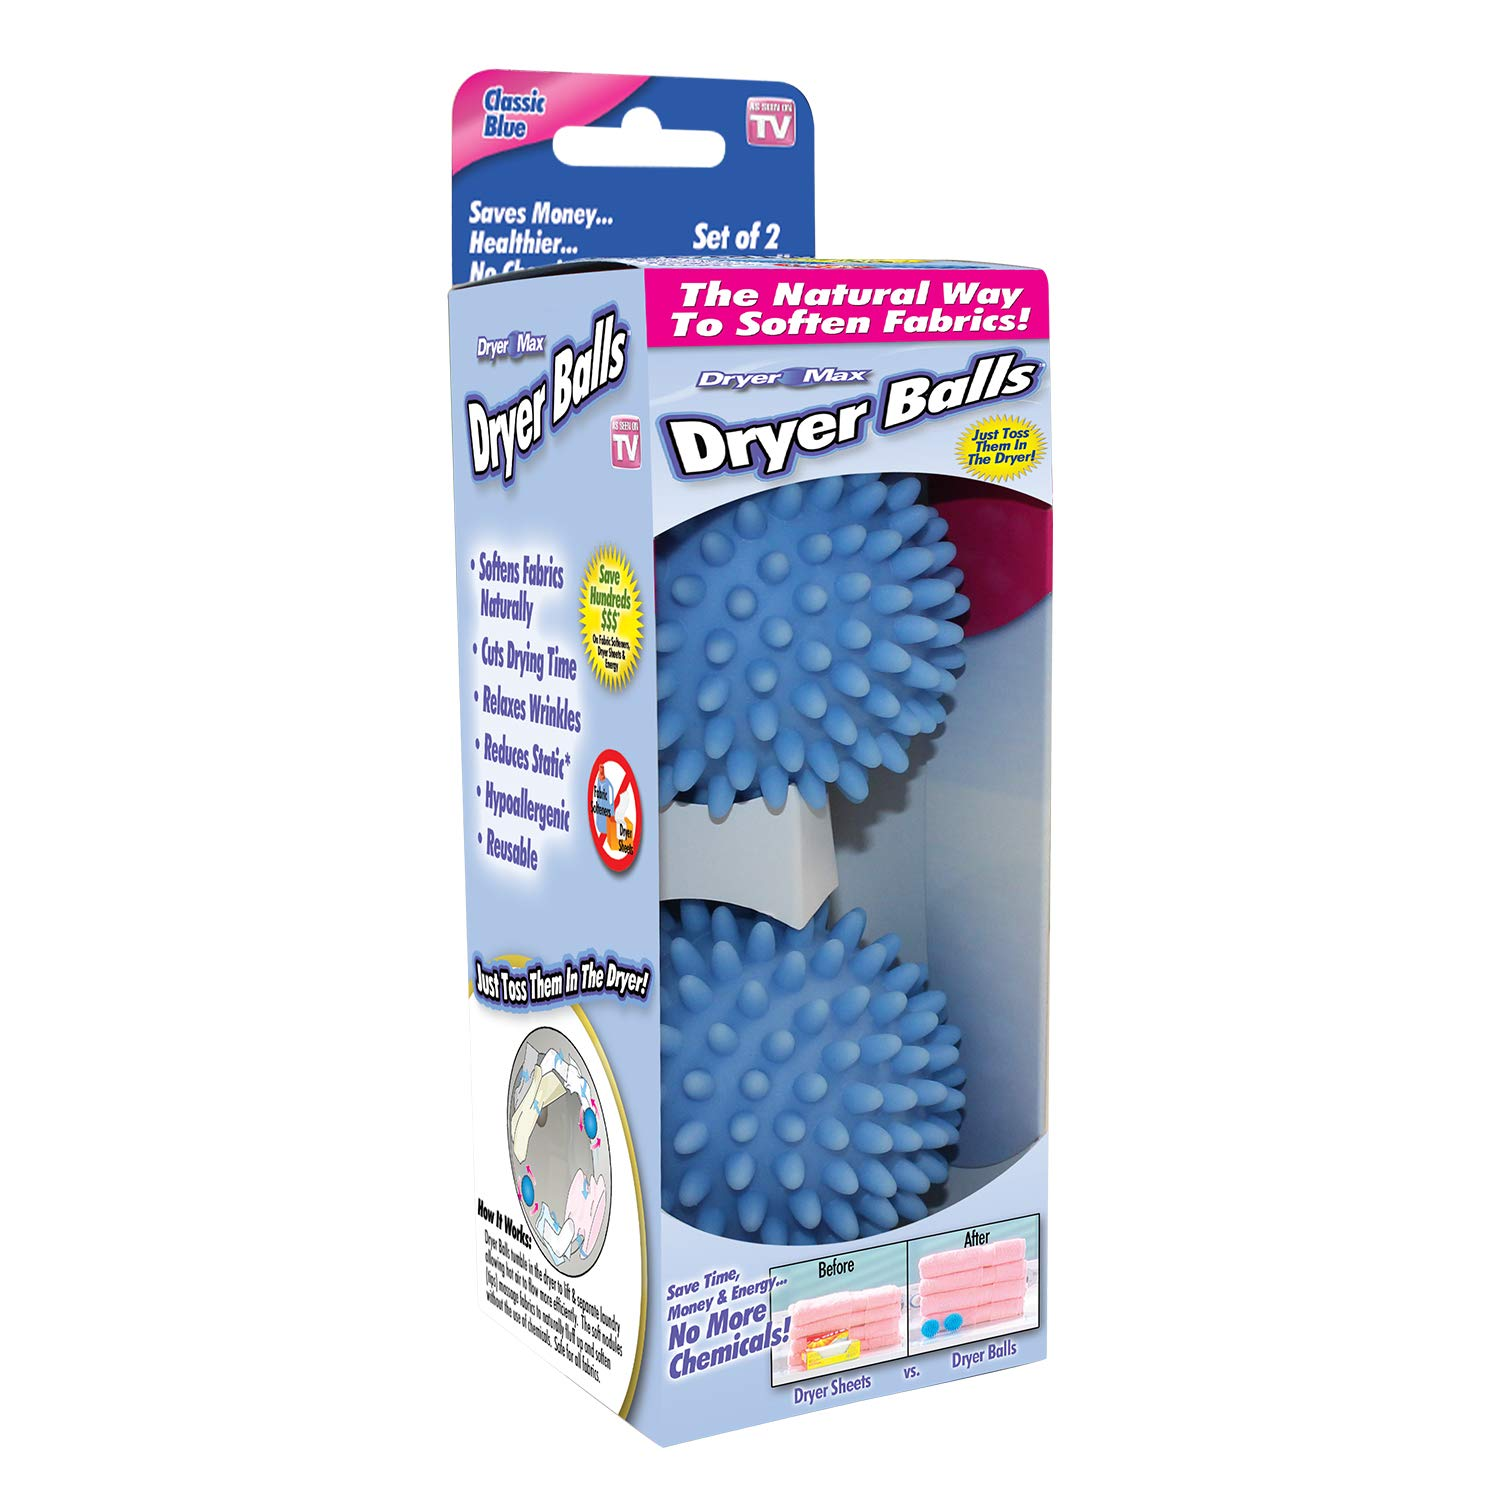 Ontel DryerMax Laundry Dryer Balls | Reusable, Natural,Hypoallergenic Fabric Softener | Saves Dryer Time and Energy | 2 Count | Colors May Vary: Blue, Purple, Yellow